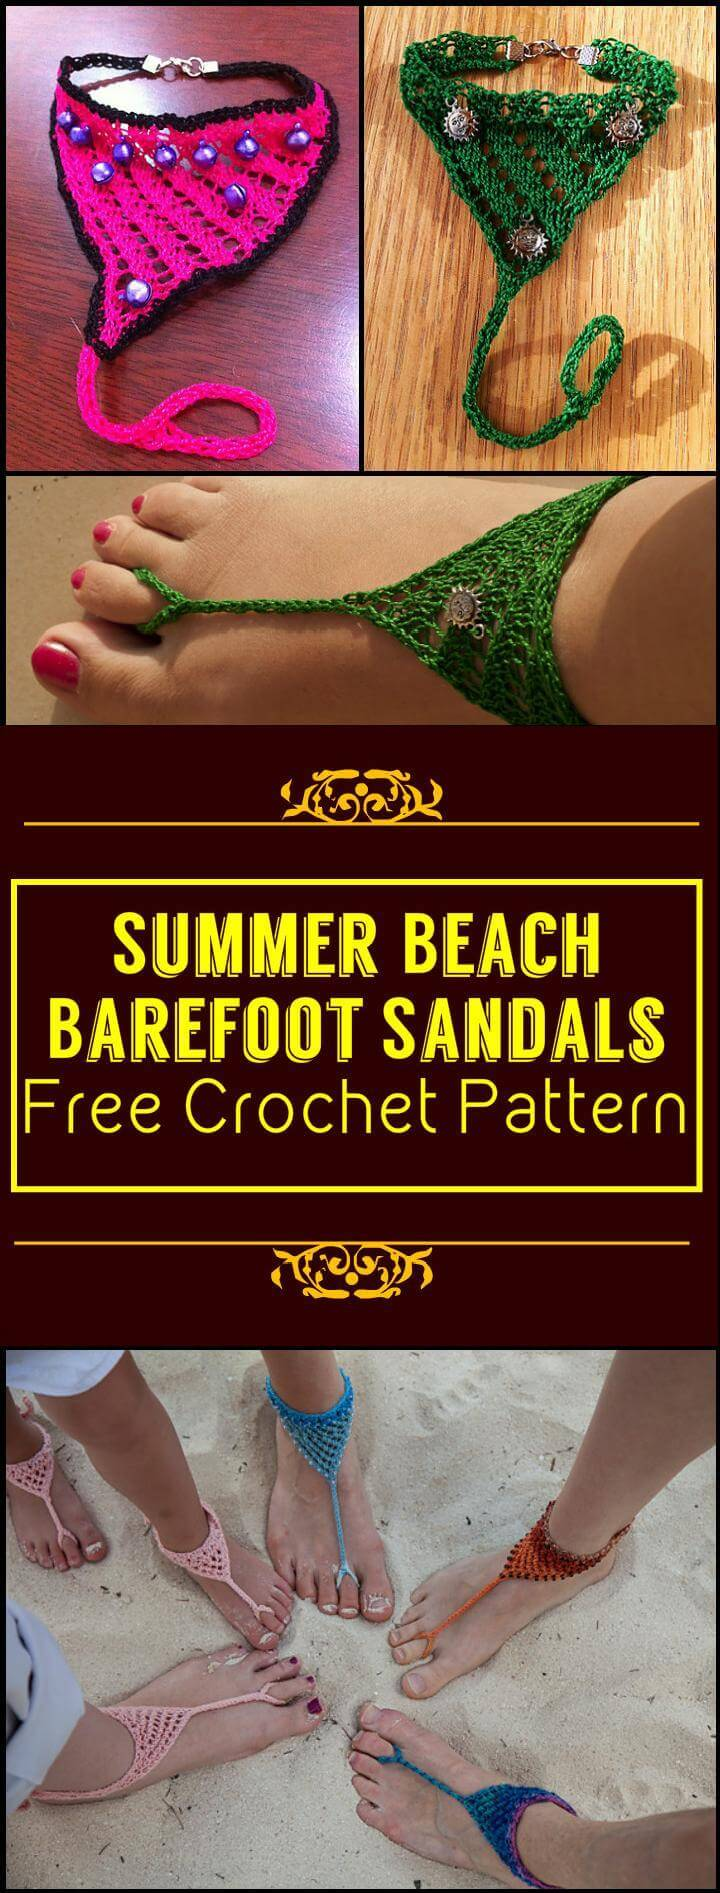 Summer Beach Barefoot Sandals Free Crochet Pattern